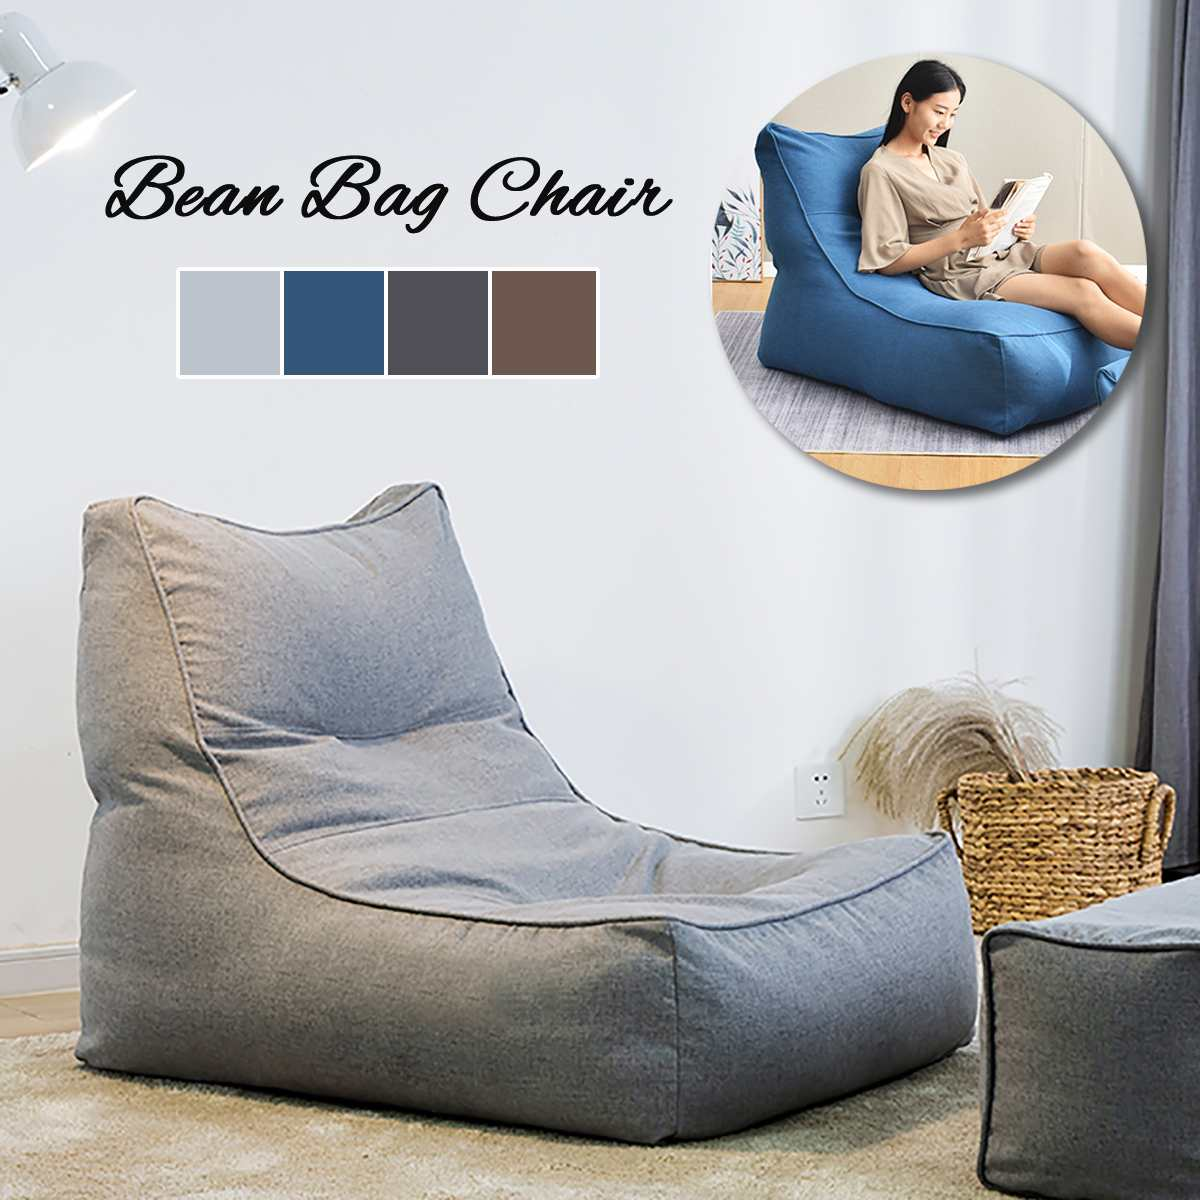 Lazy Cotton Linen Bean Bag Chair Sofa Cover No Filling in